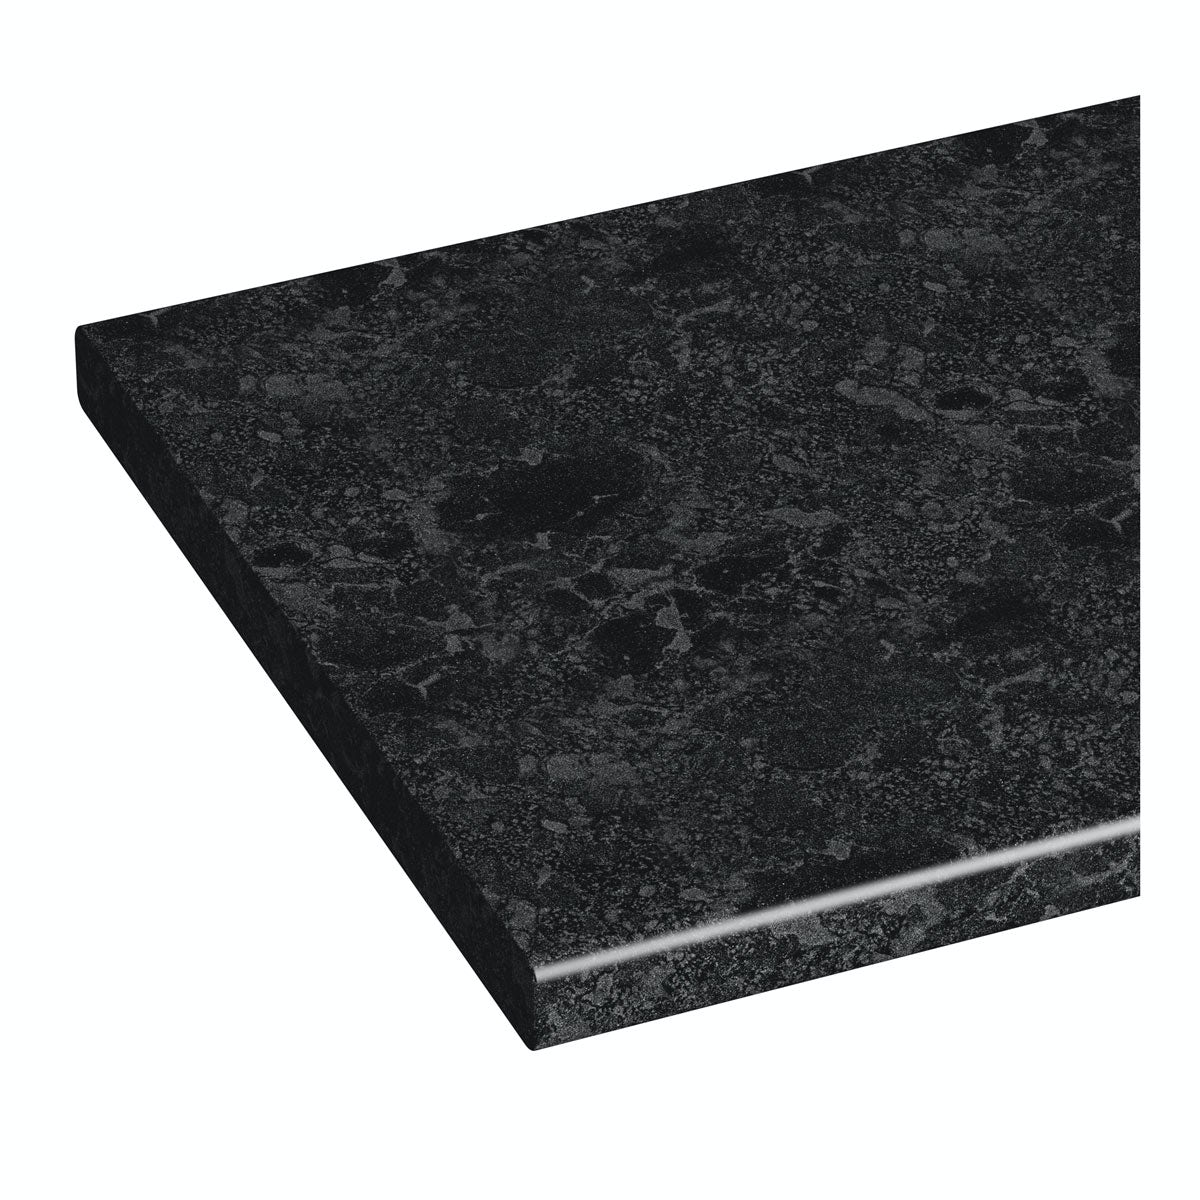 Orchard Florence midnight black vanity unit countertop 337 x 1800